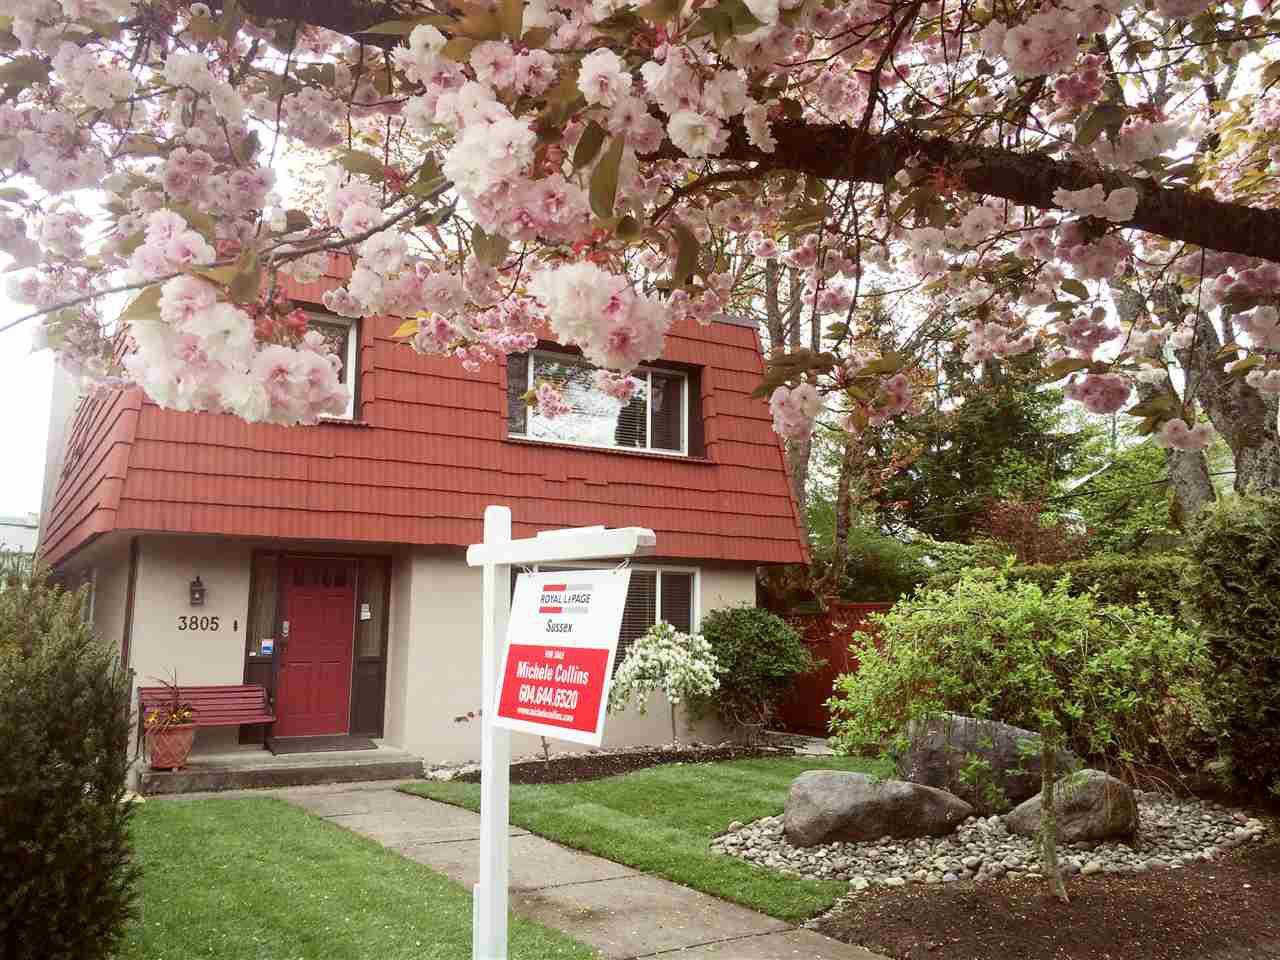 Main Photo: 3805 W 24TH Avenue in Vancouver: Dunbar House for sale (Vancouver West)  : MLS®# R2056795